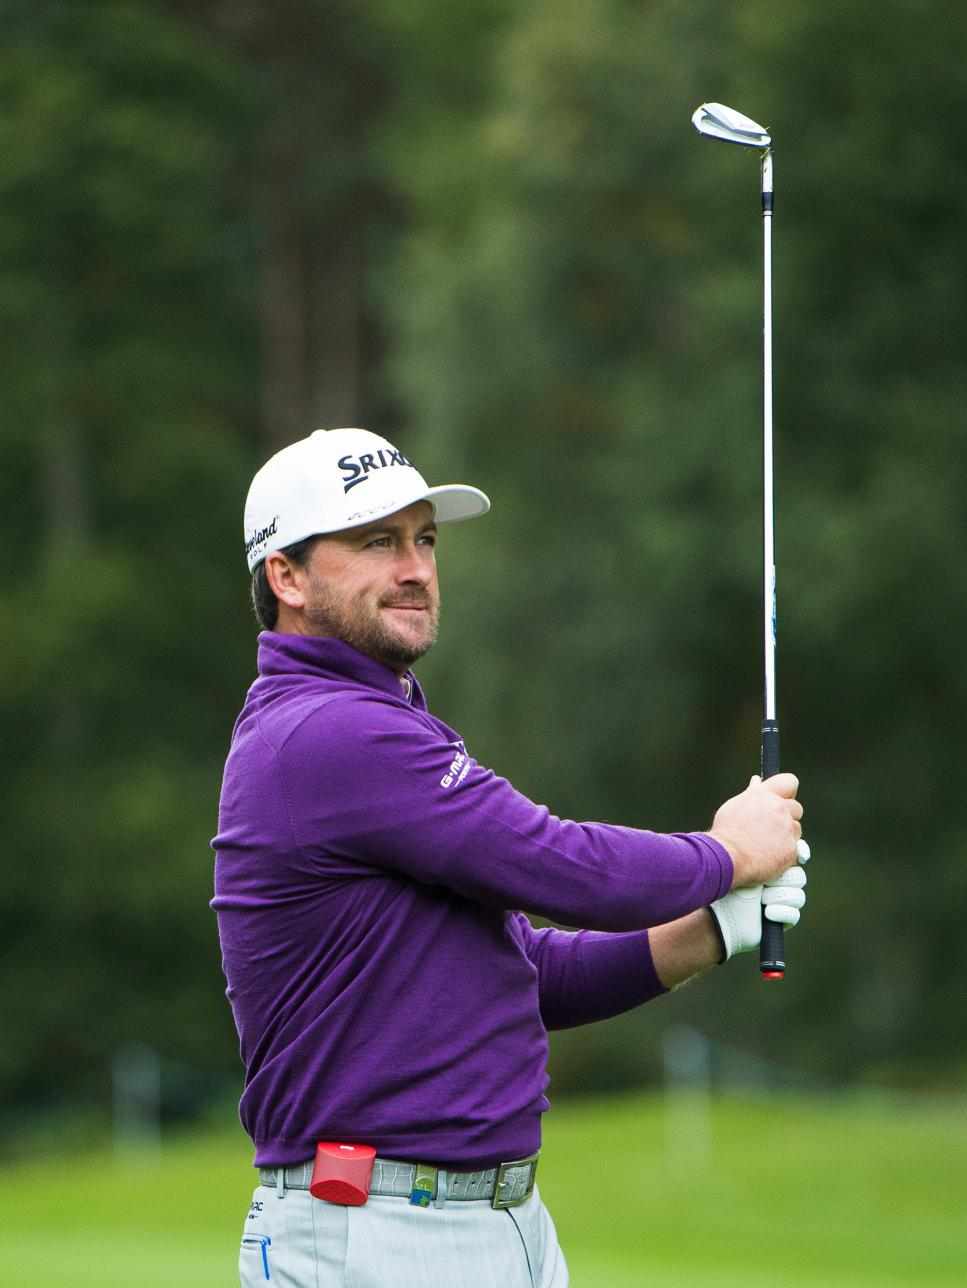 Graeme McDowell-Game Golf.JPG